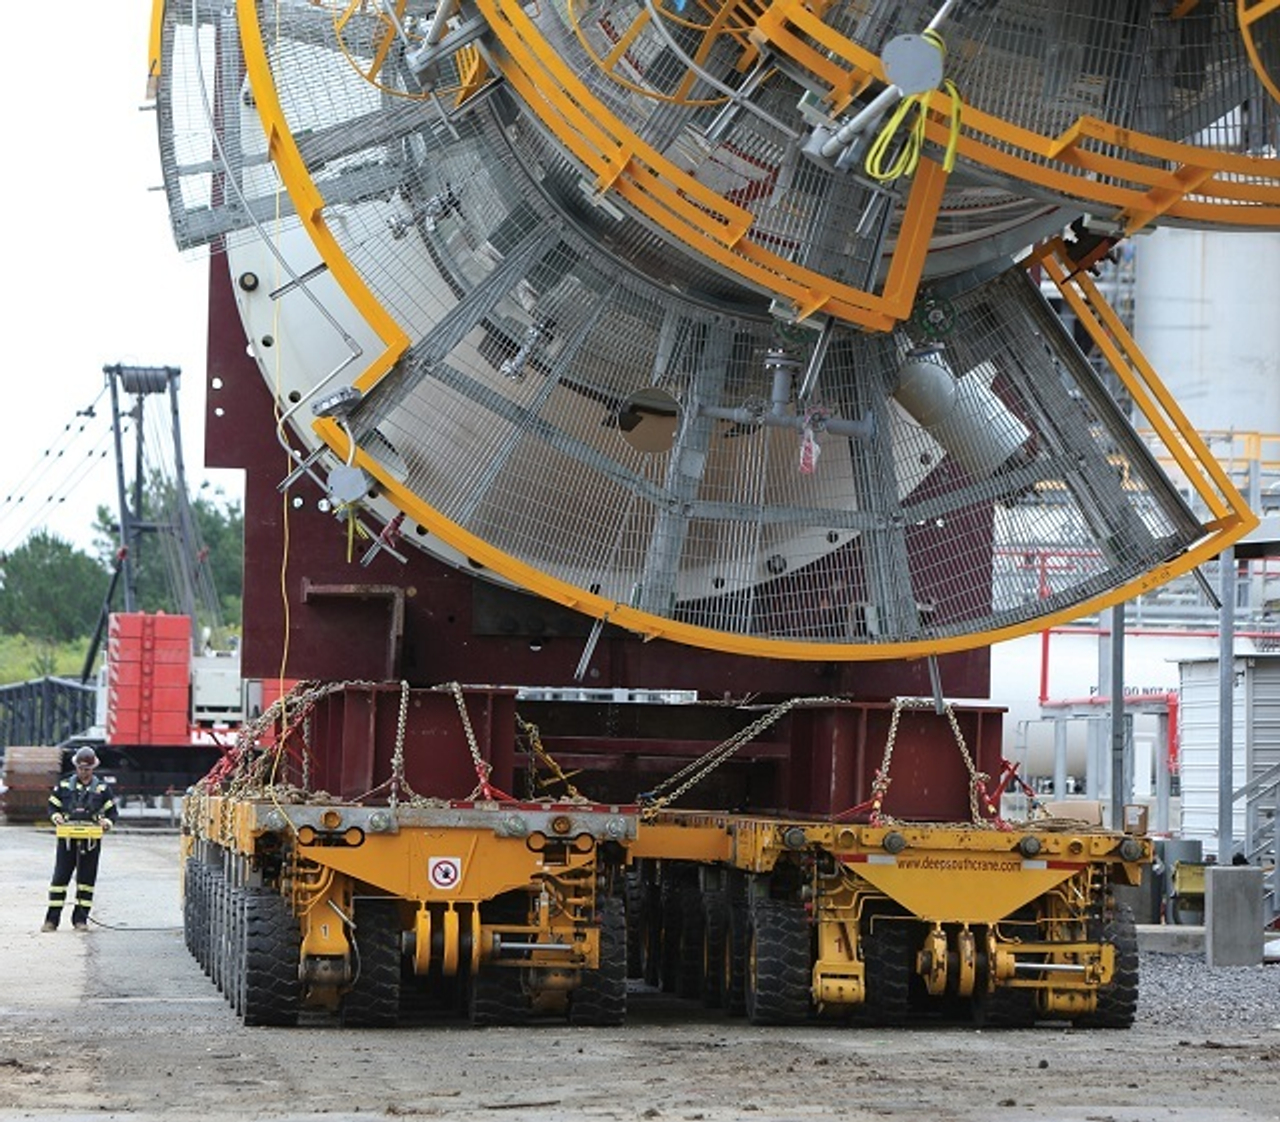 prefrac tower transport